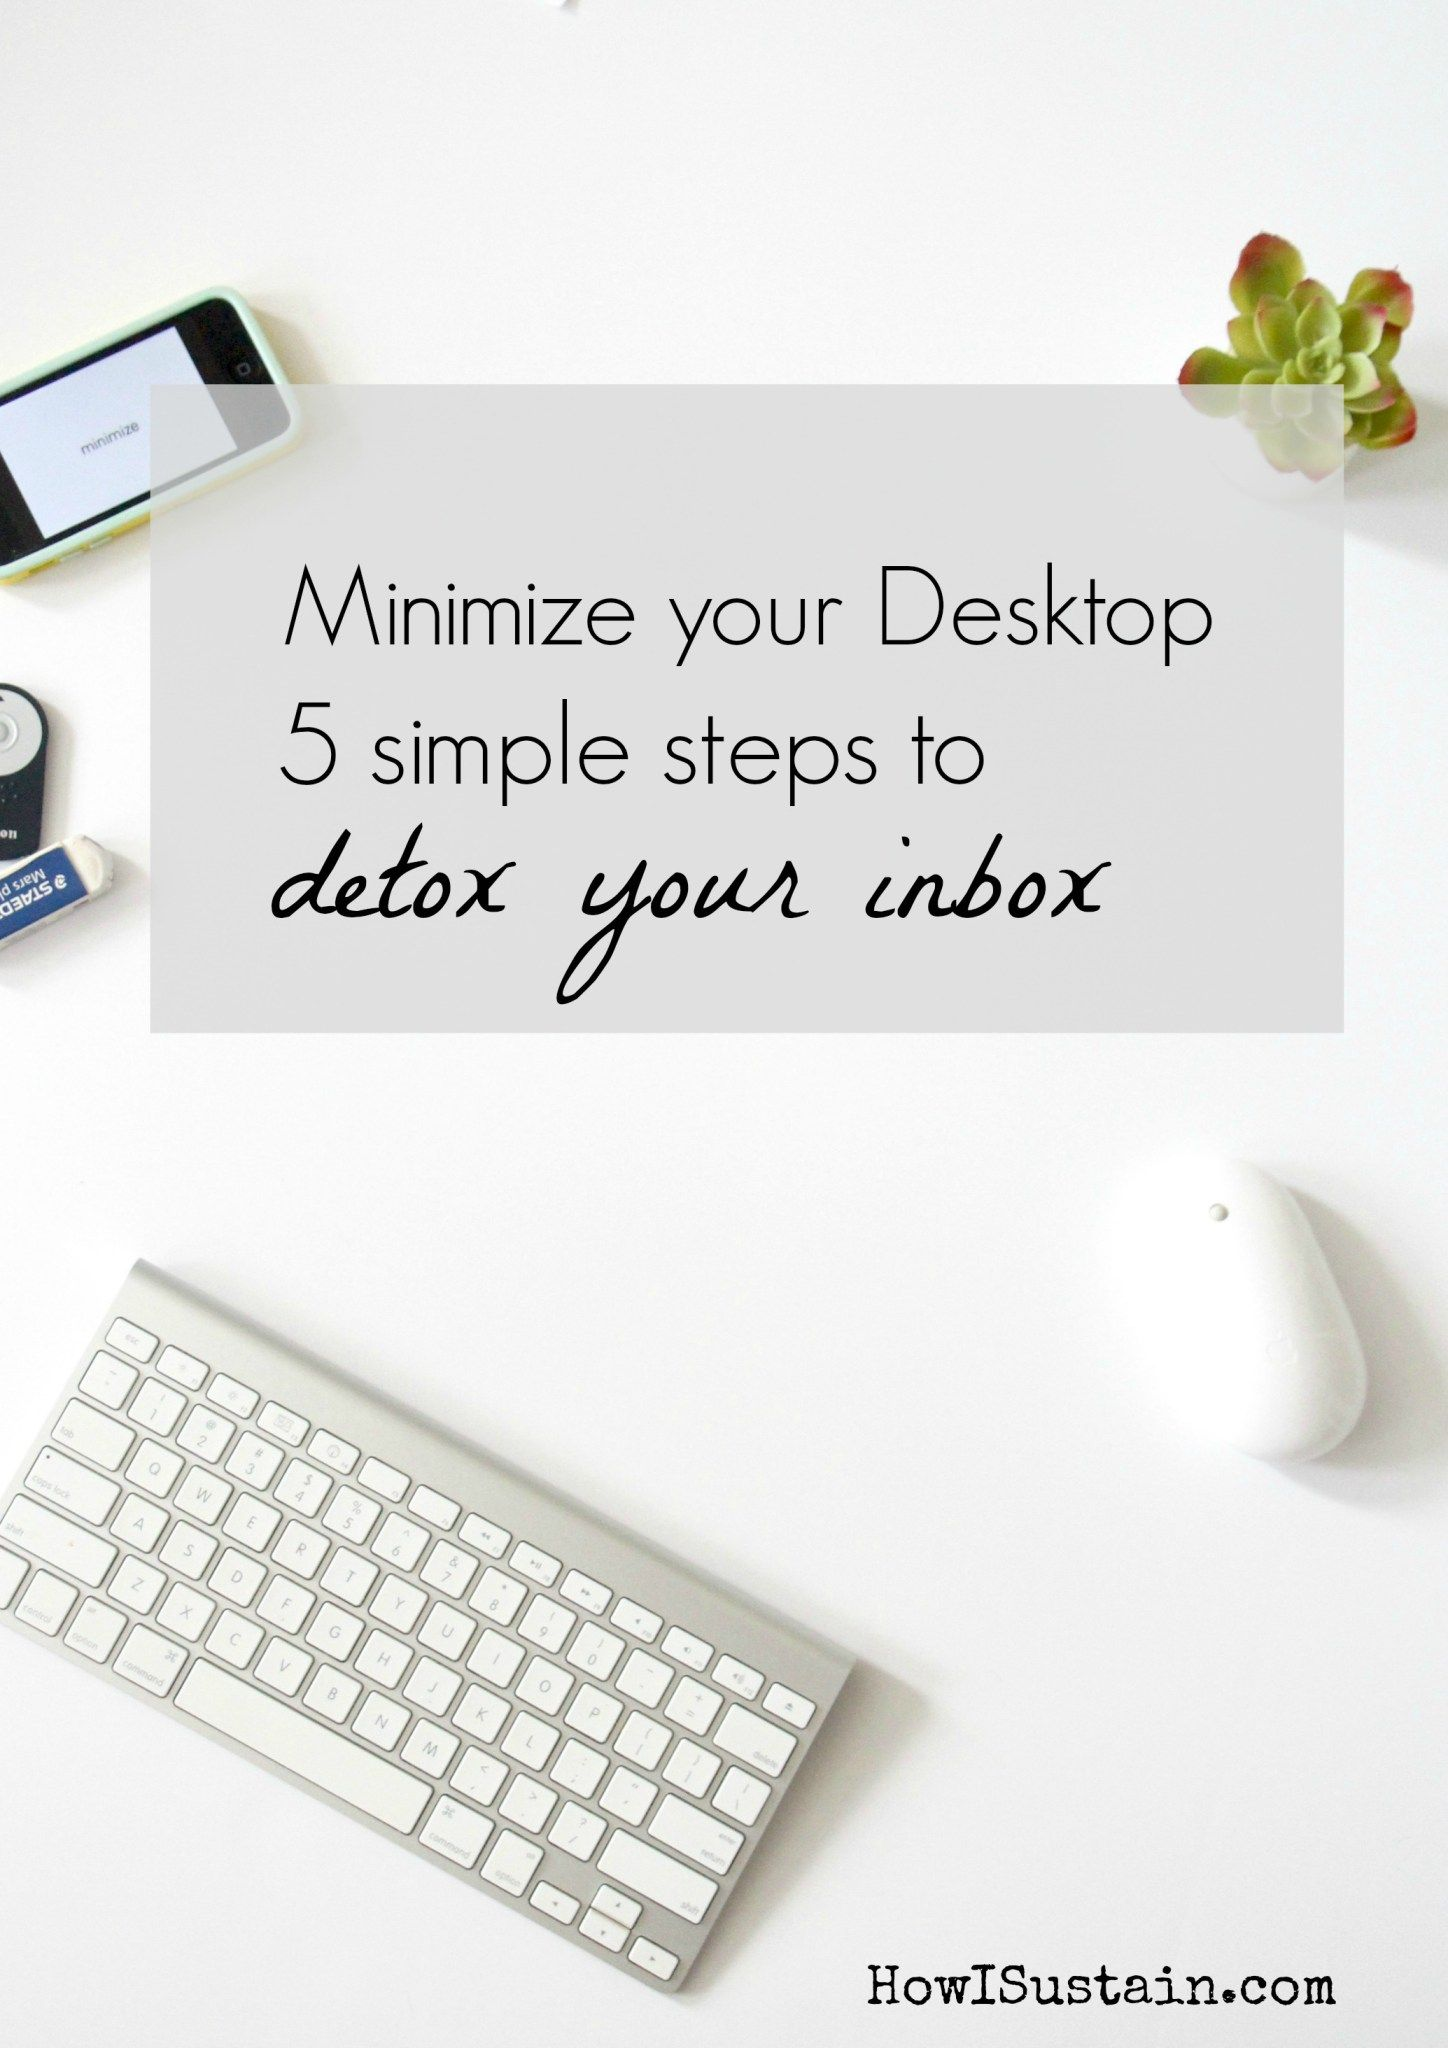 5 simple steps to clean up your email inbox